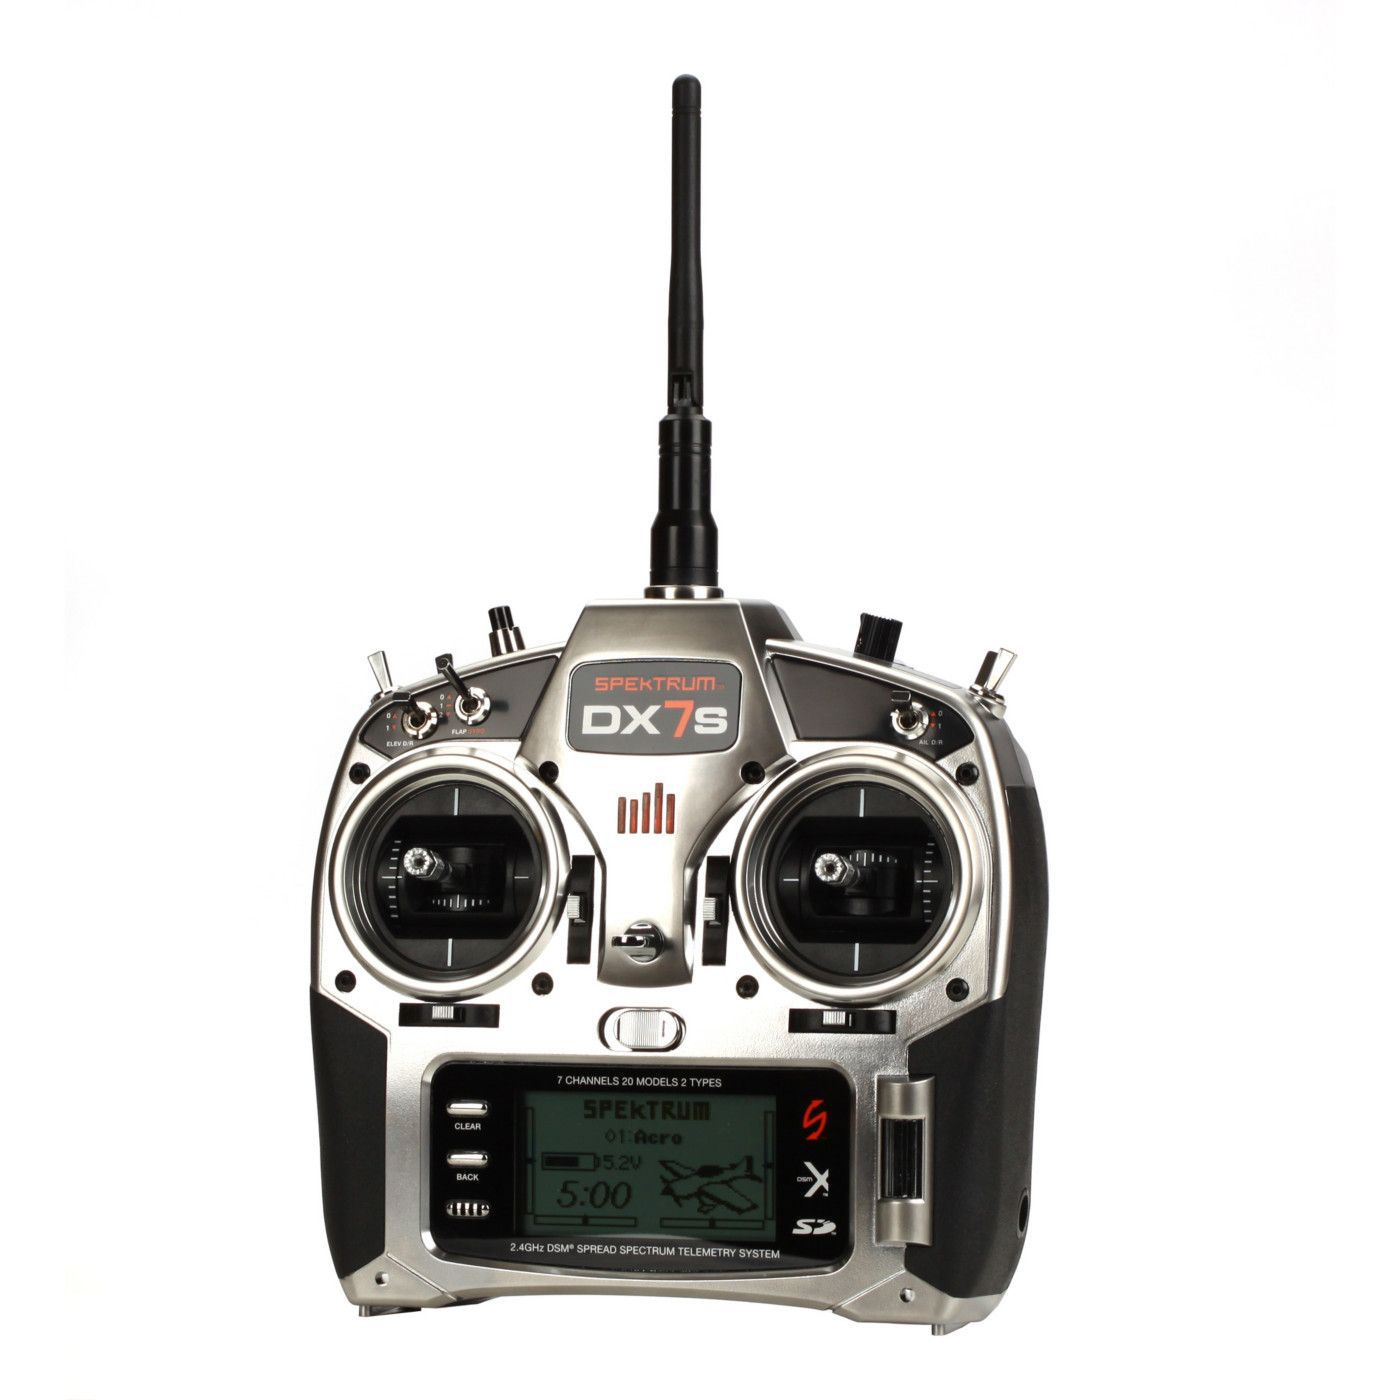 medium resolution of image for dx7s 7 channel dsmx transmitter with ar8000 receiver mode 2 from